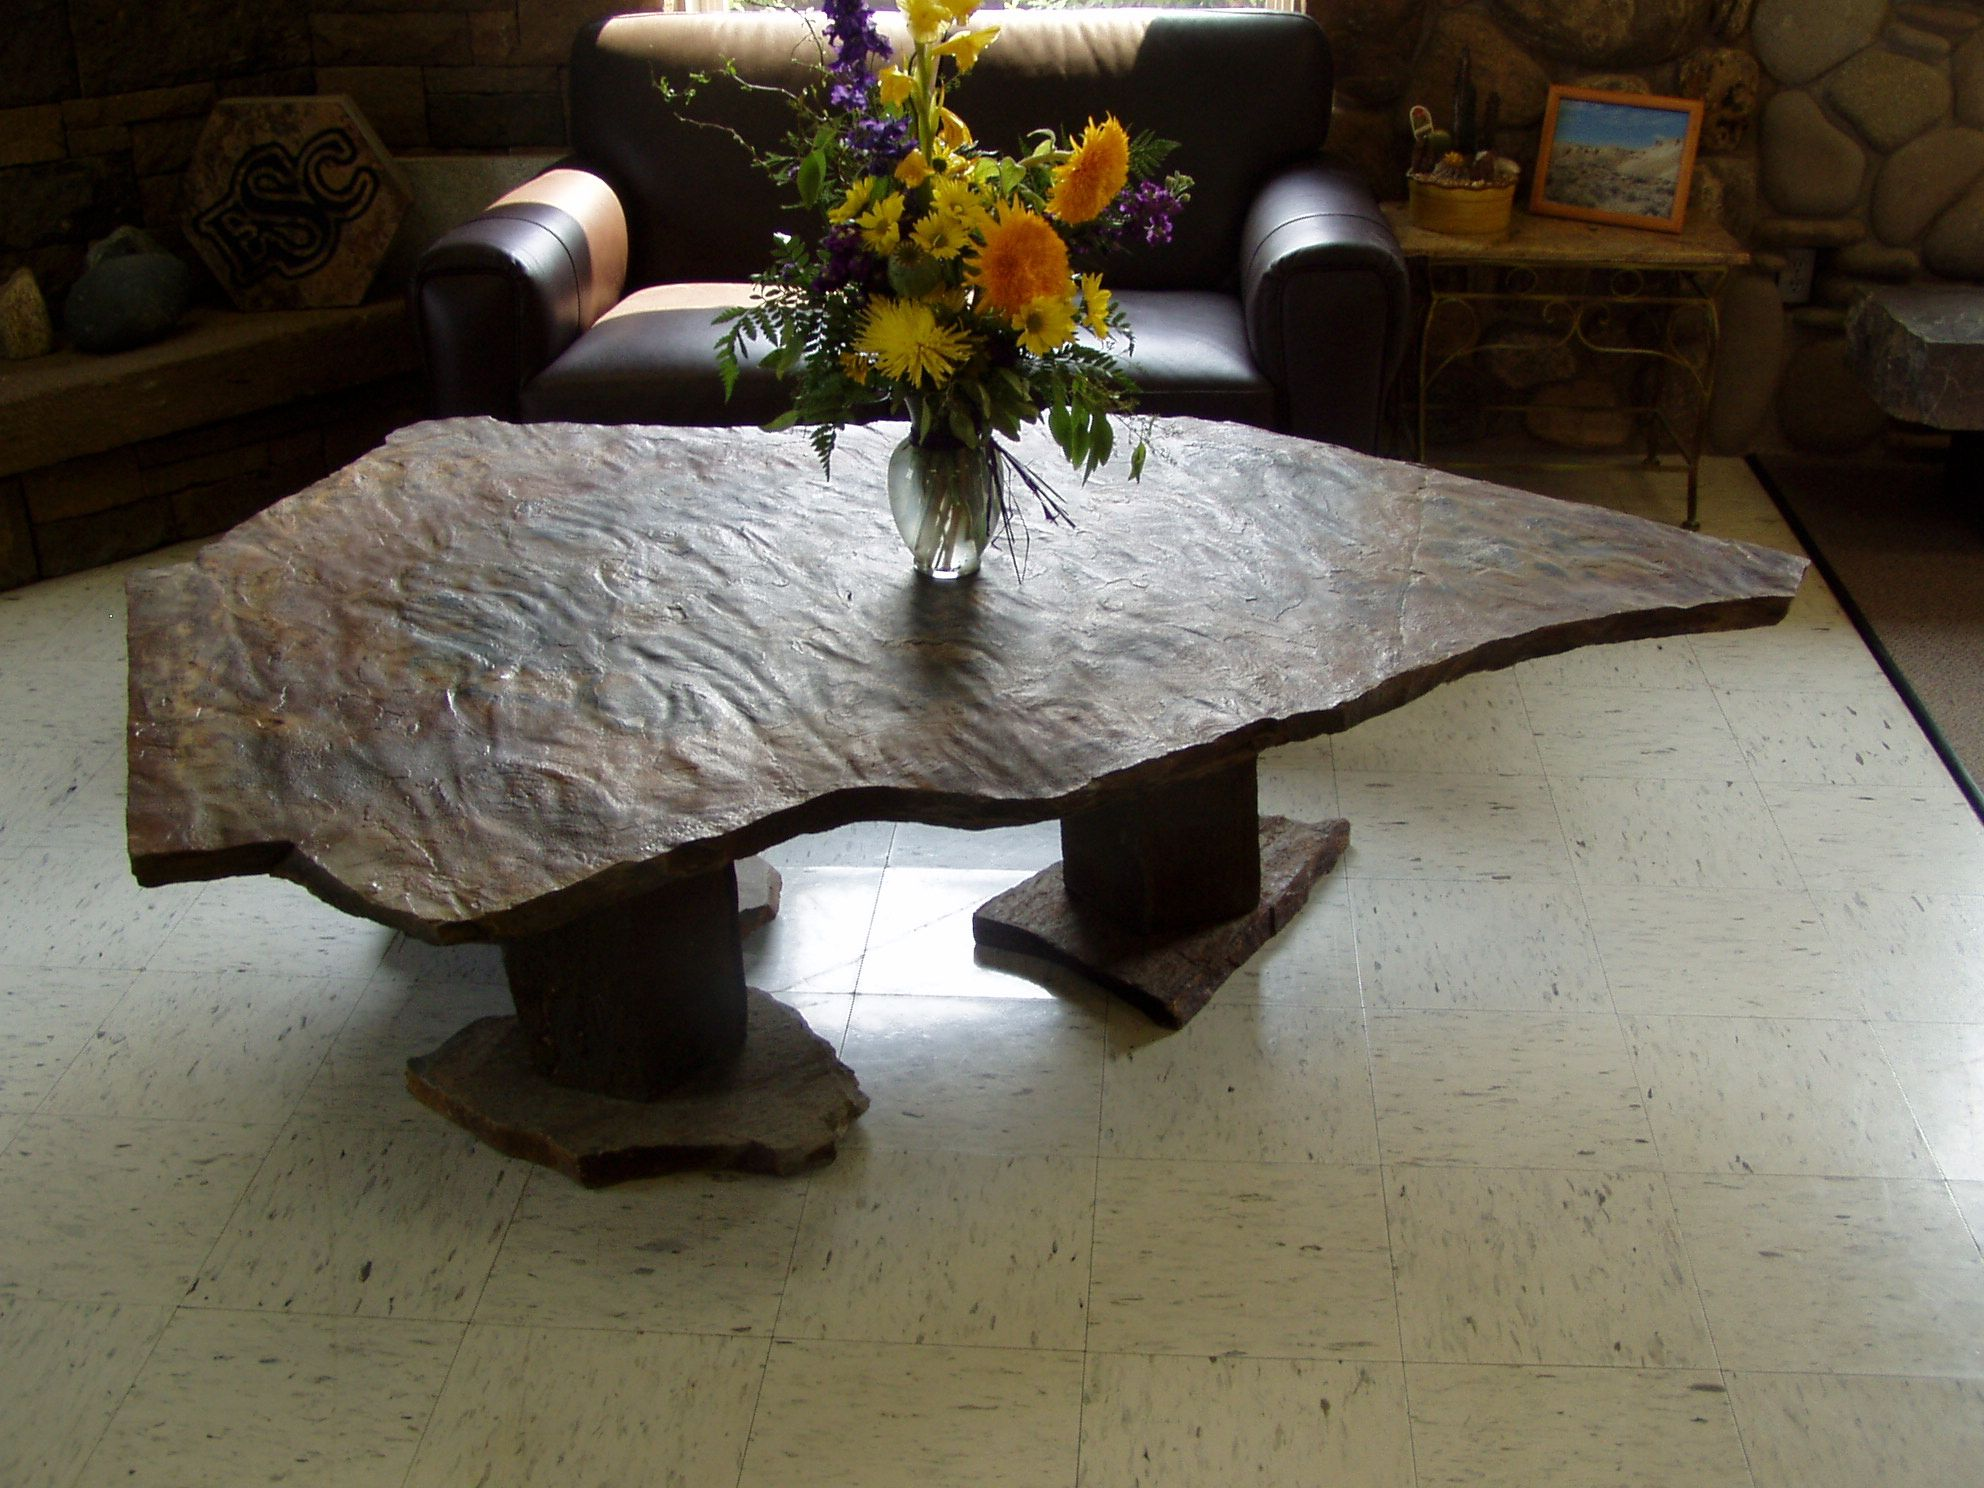 Flagstone coffee table gallery coffee table design ideas oversize slab coffee table by empire stone company backyard oversize slab coffee table by empire stone geotapseo Images